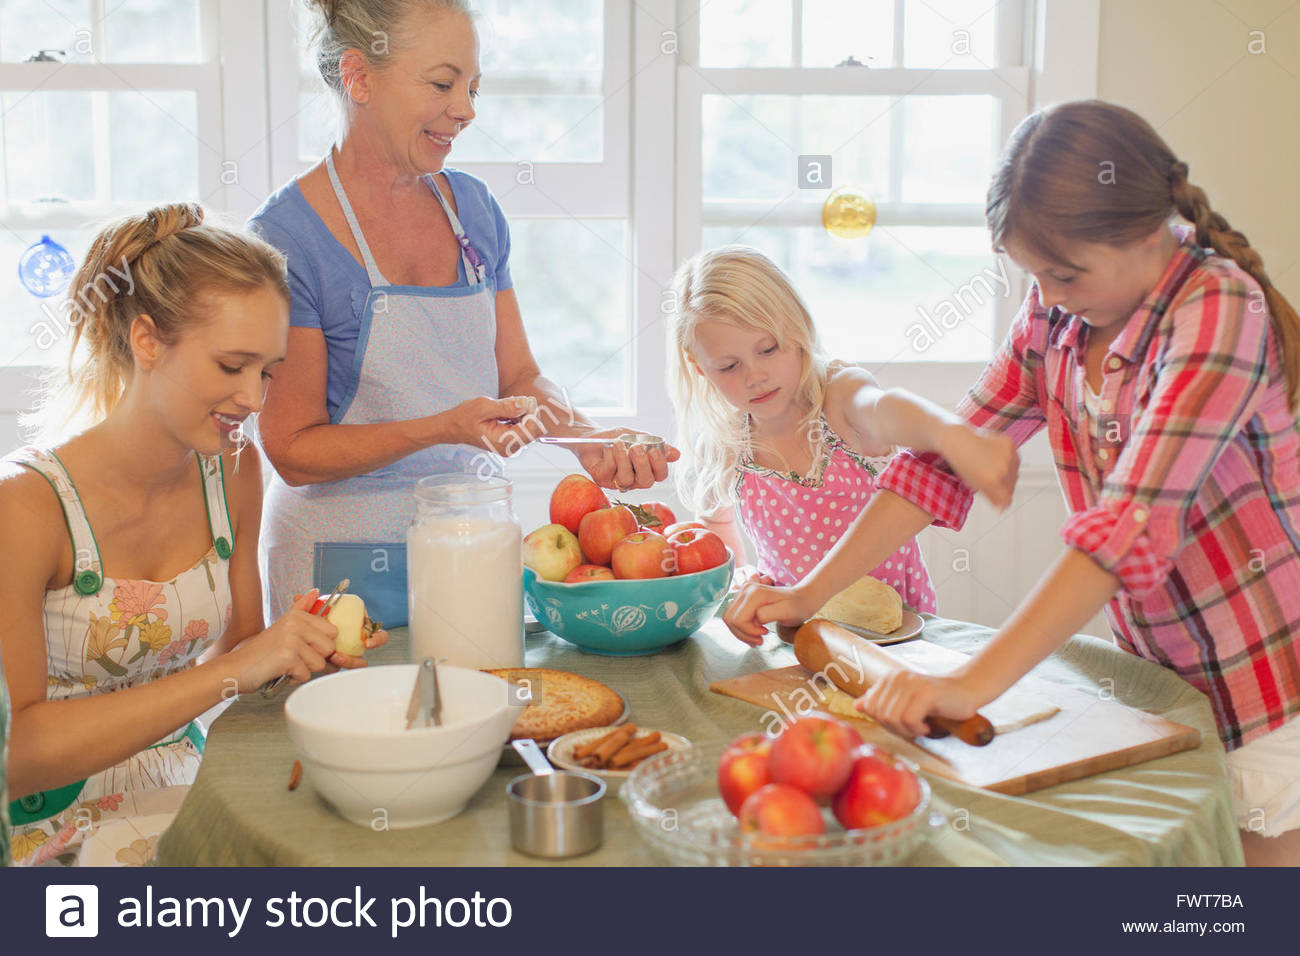 Grandmother supervising granddaughters making pies. - Stock Image